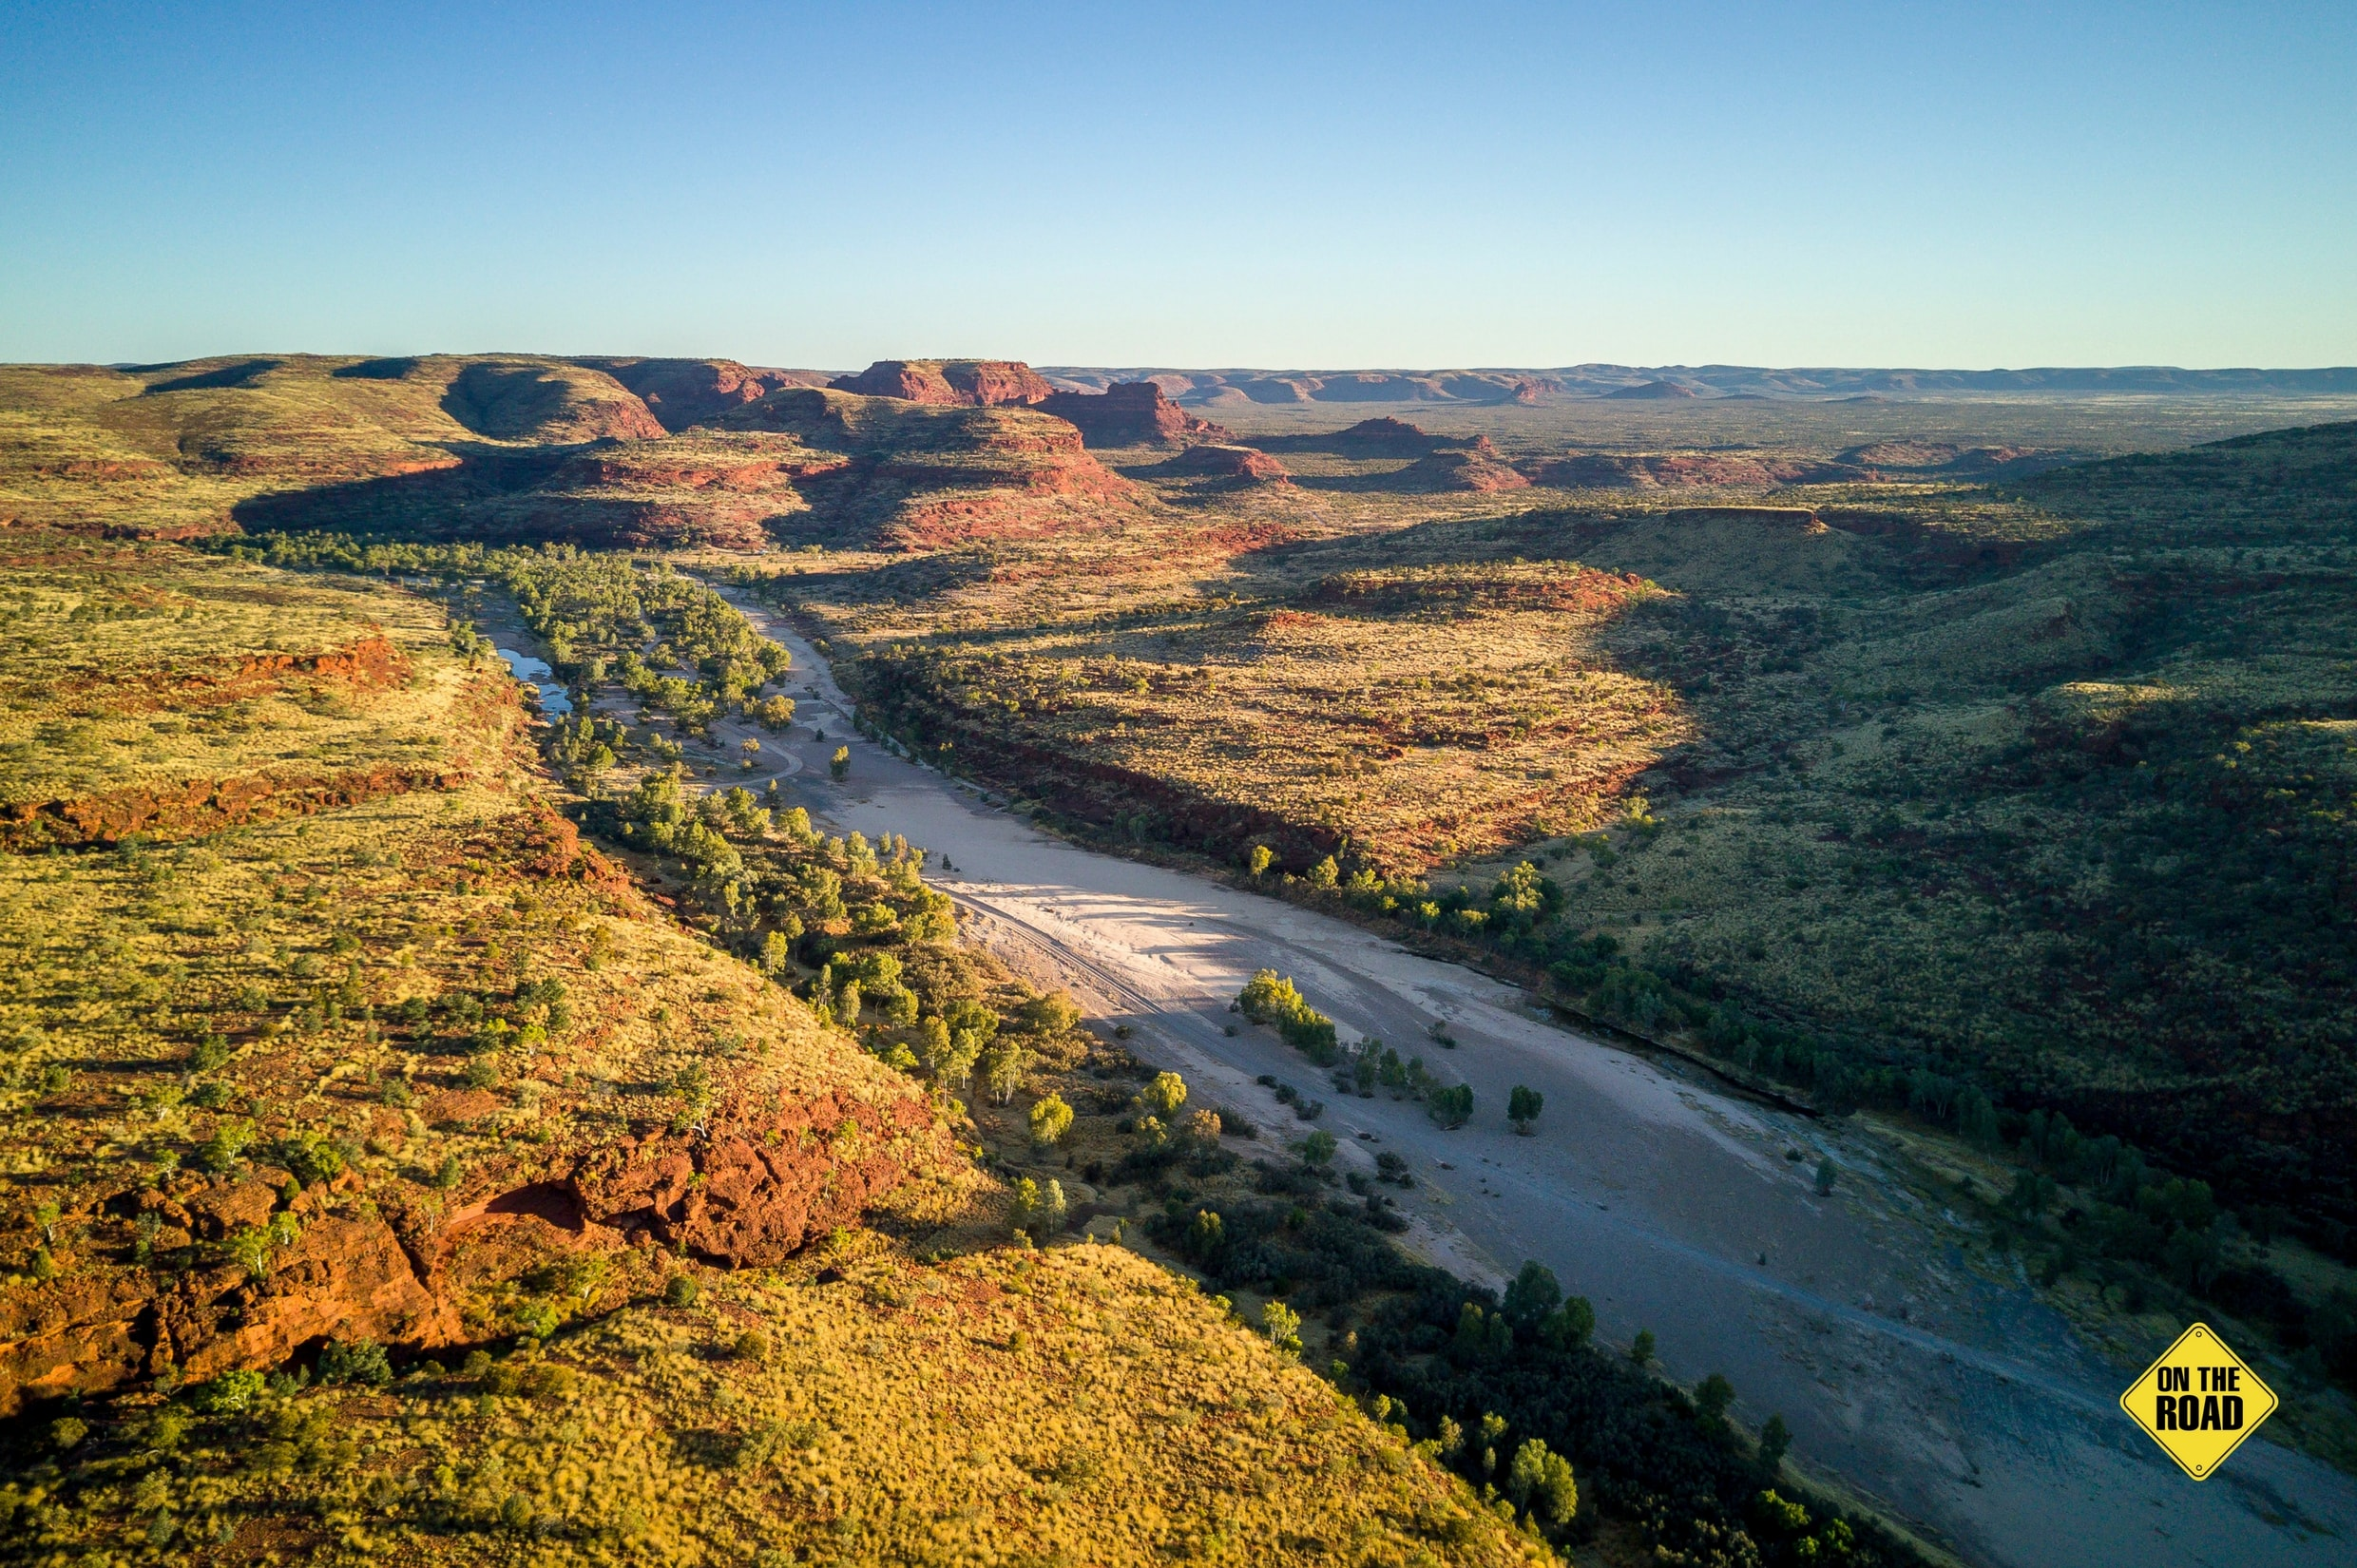 Flowing through an ancient landscape the Finke rates as one of the worlds oldest rivers